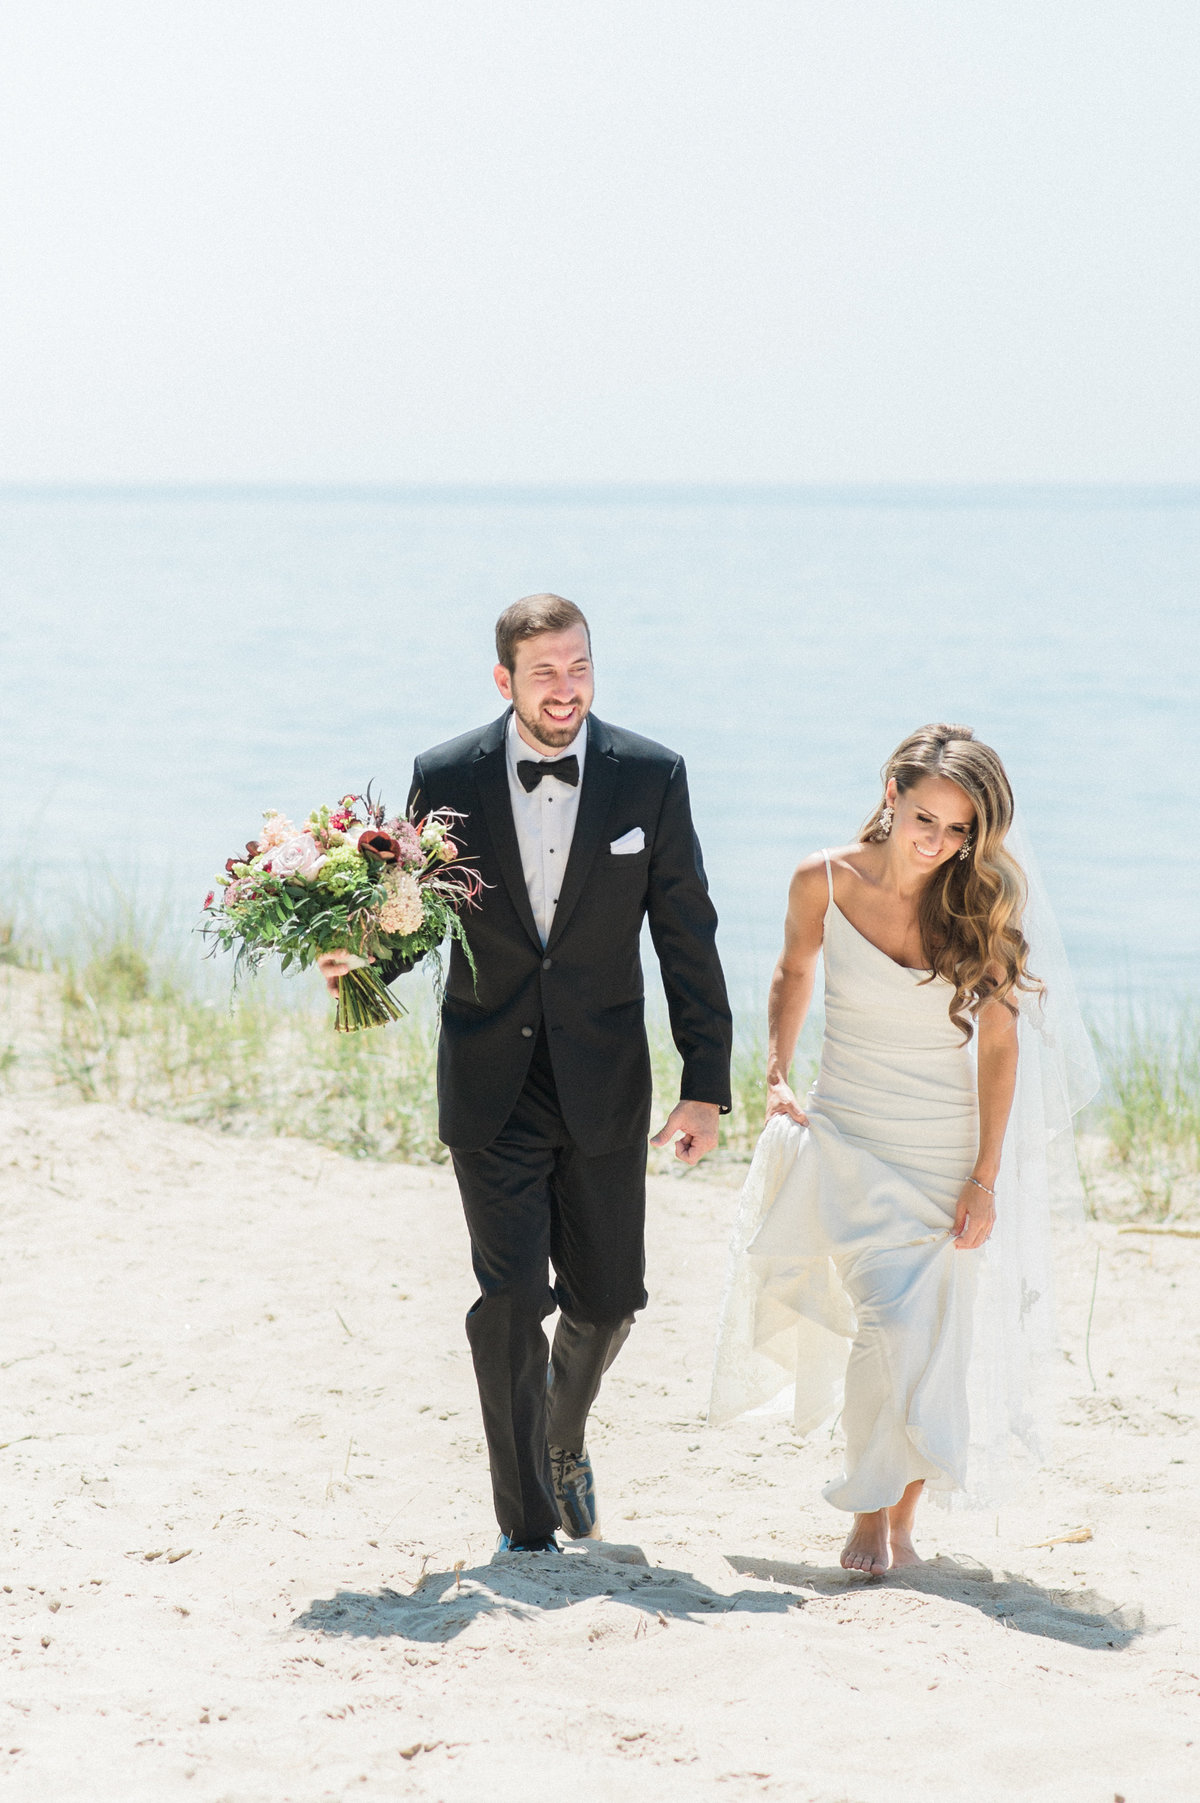 bride and groom smiling walking on beach